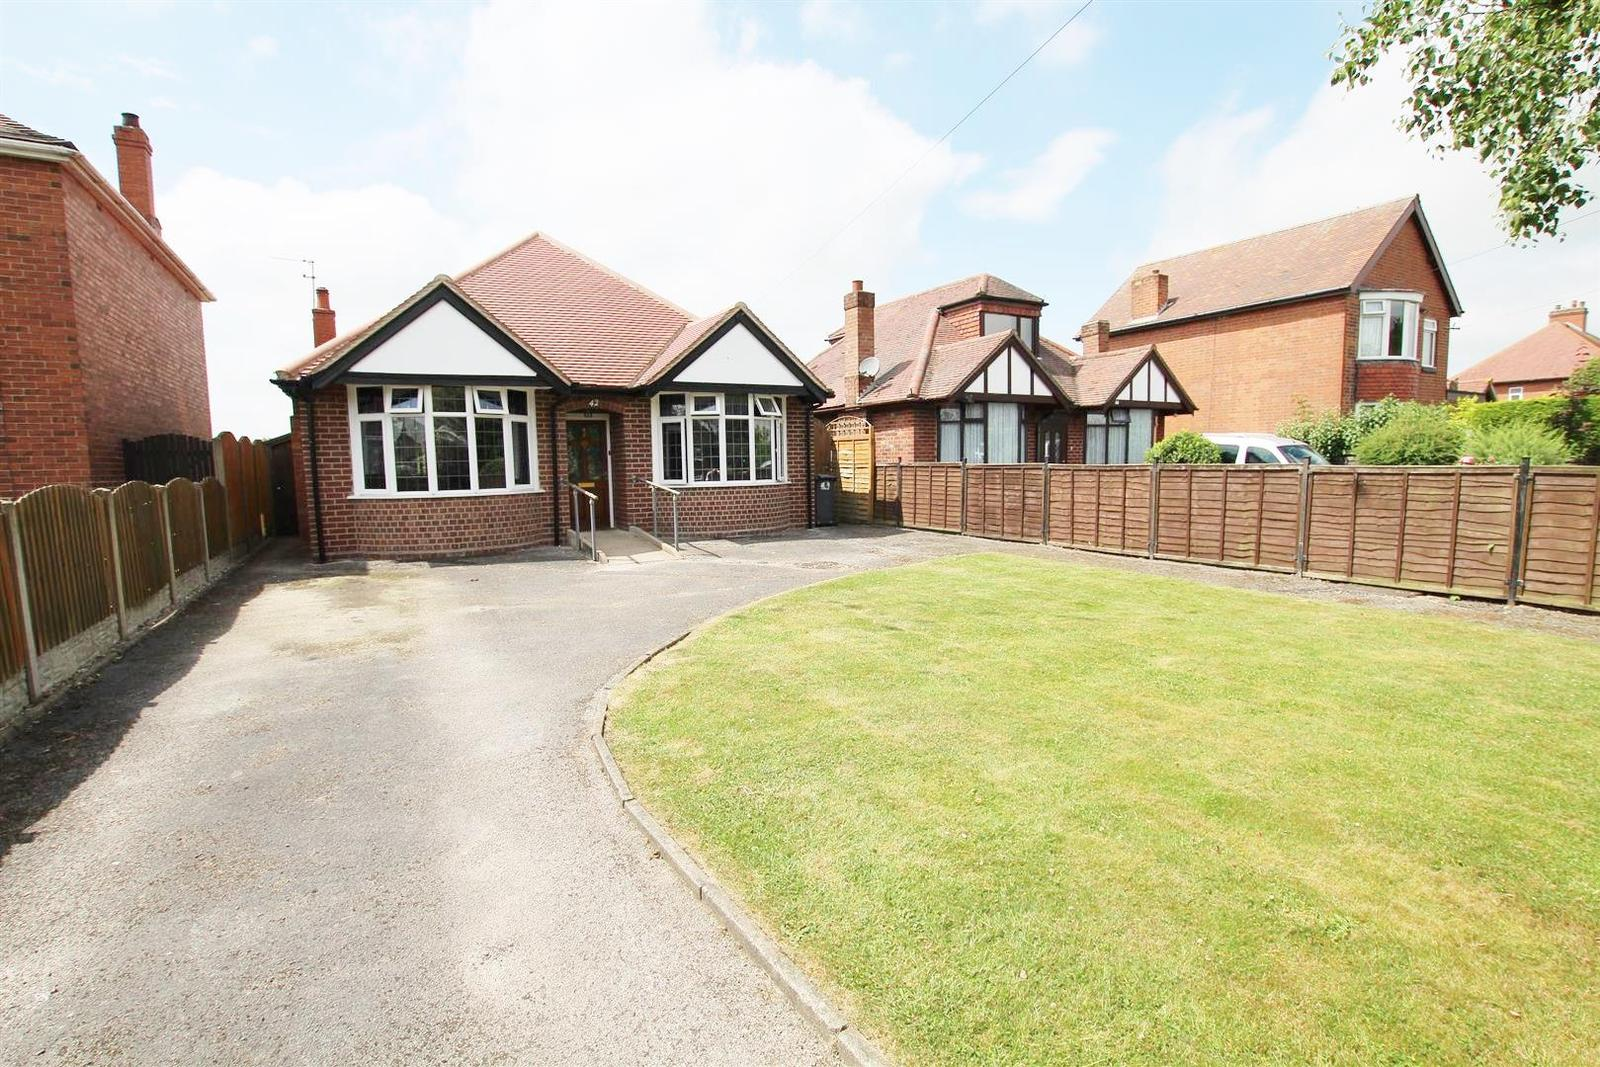 3 Bedrooms Bungalow for sale in Postern Road, Tatenhill